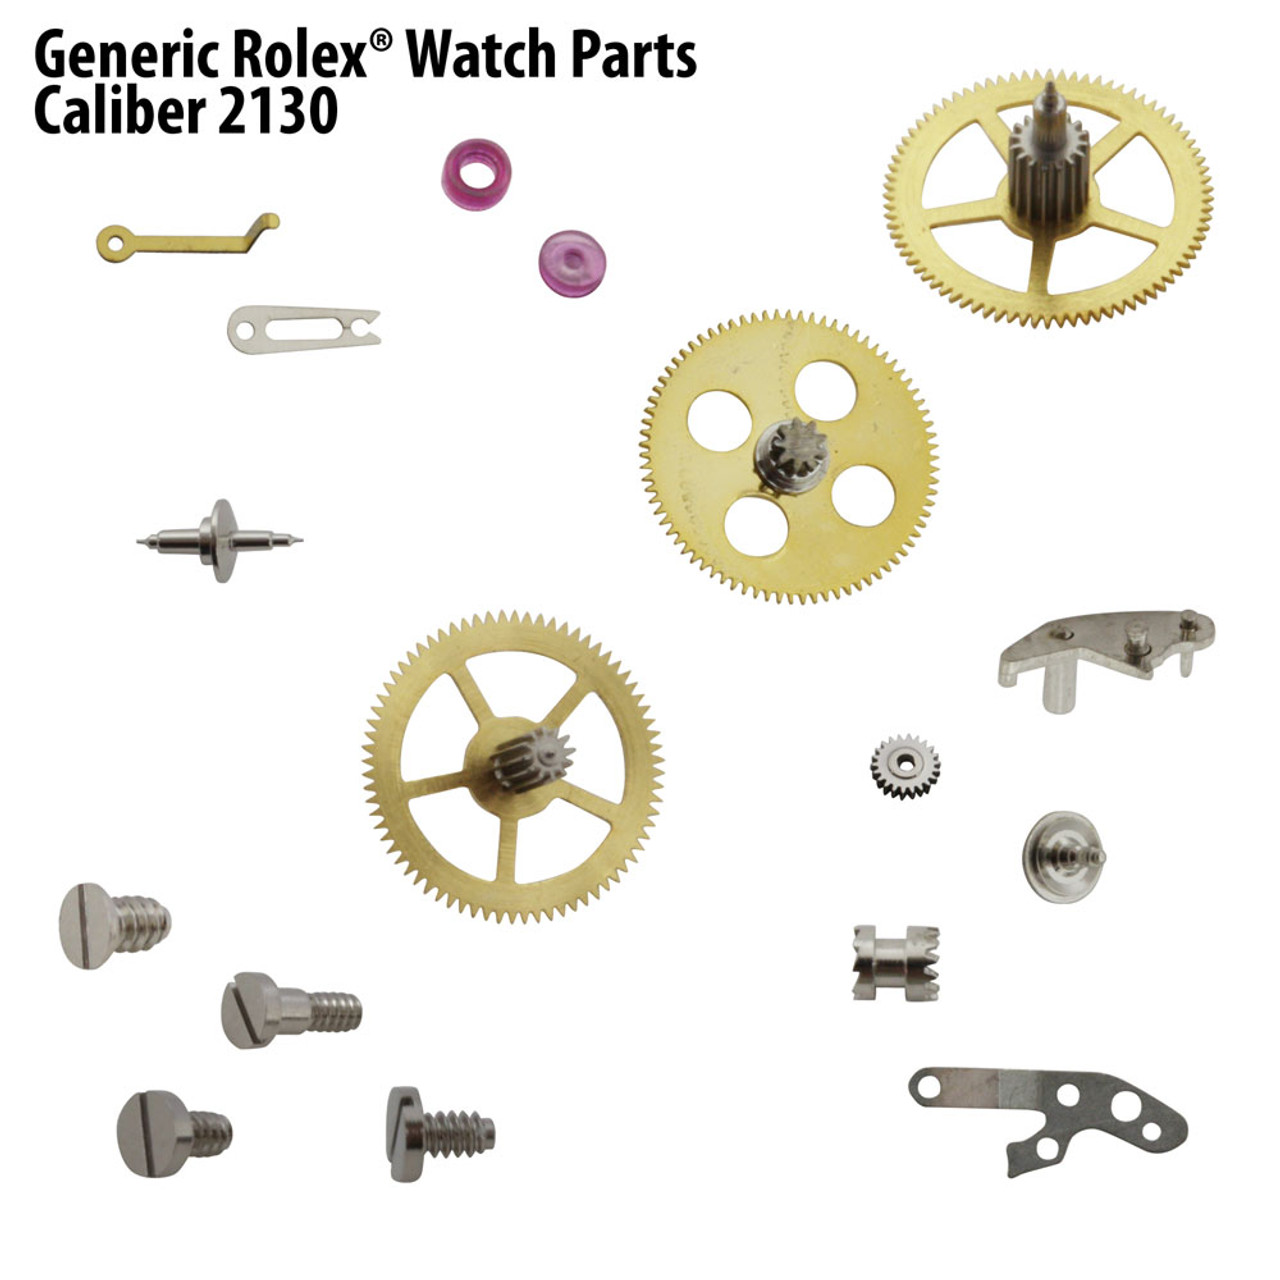 Generic Rolex® Watch Parts For Cal. 2130